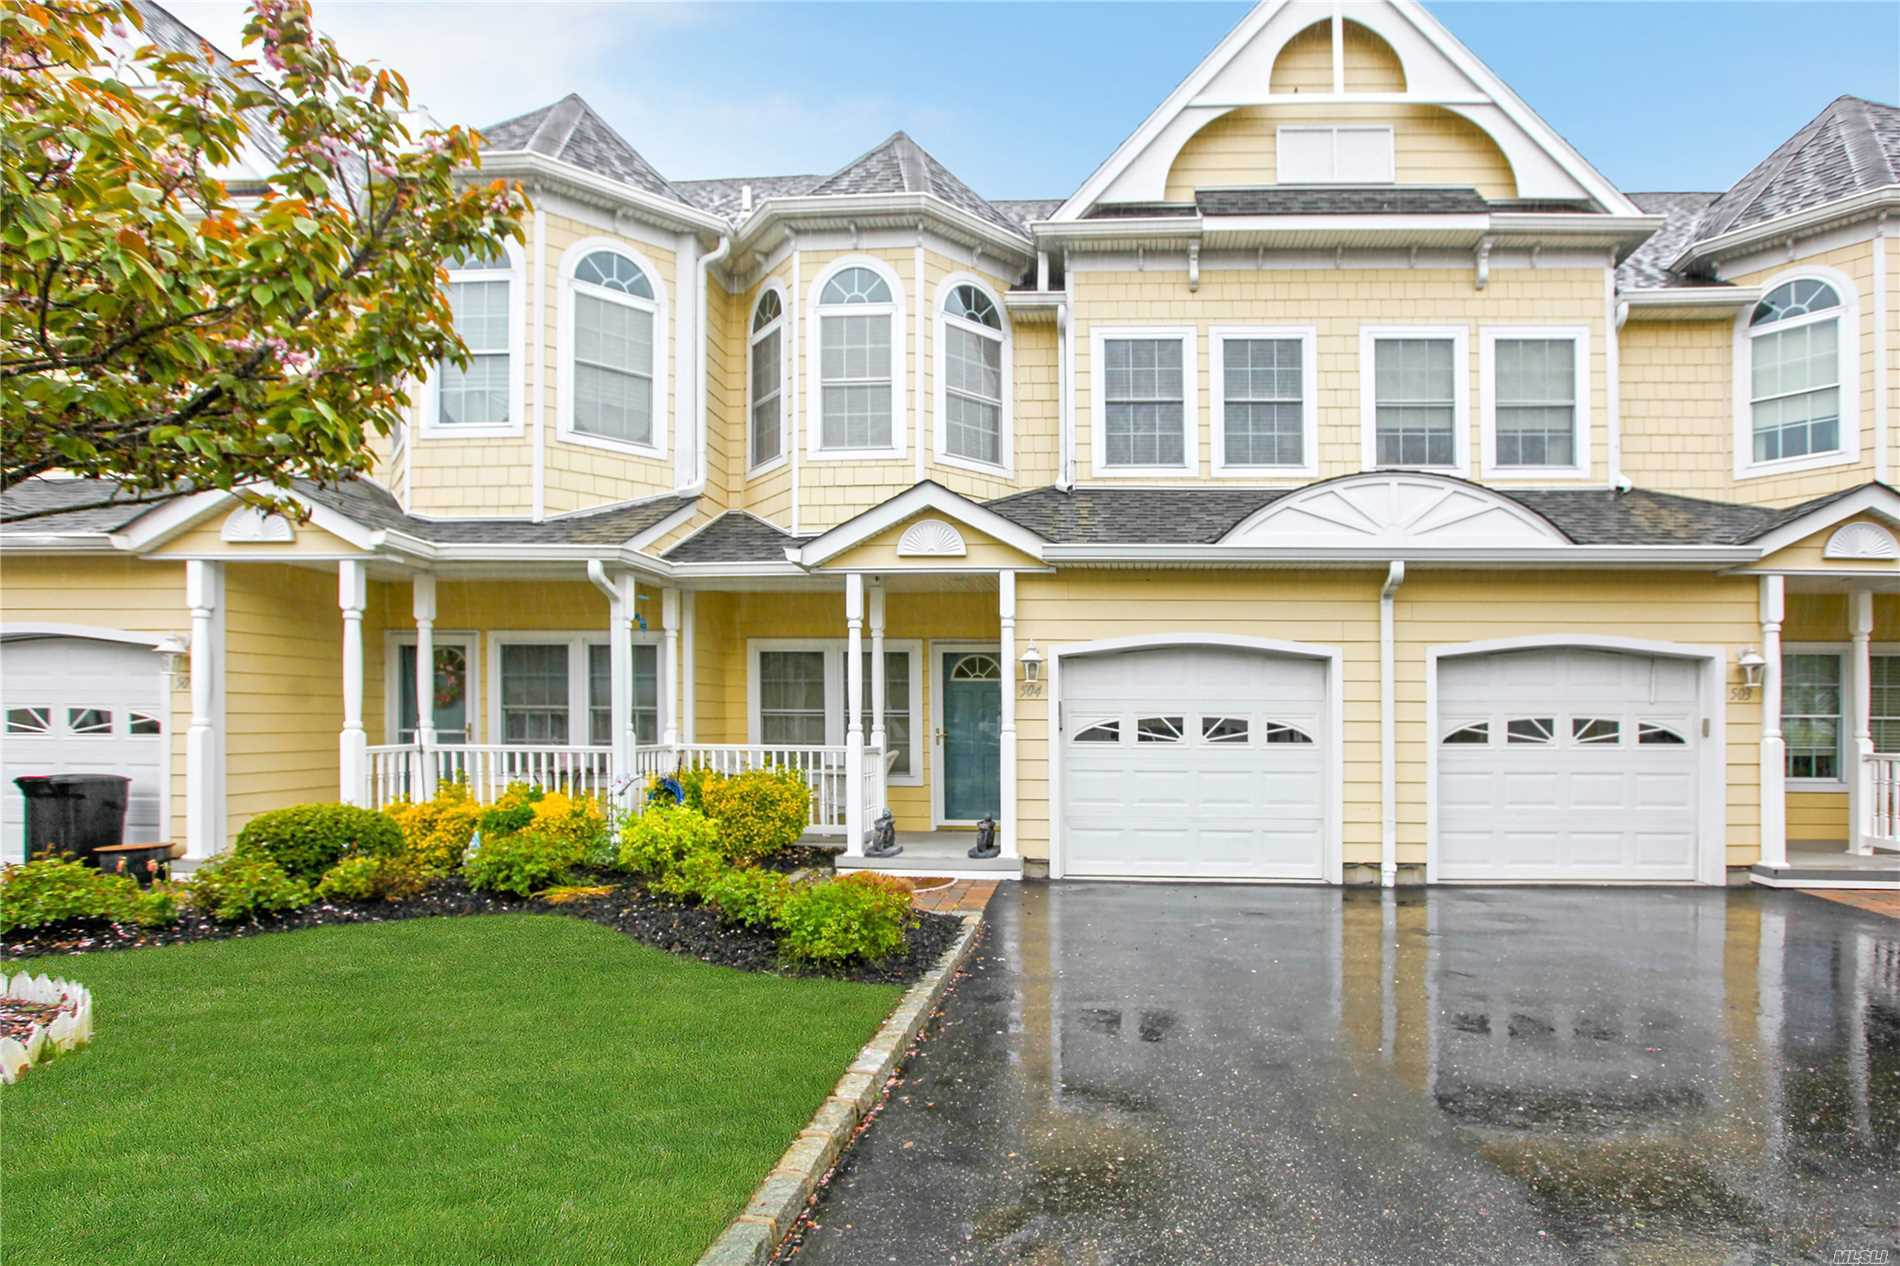 504 Emily Dr - Patchogue, New York